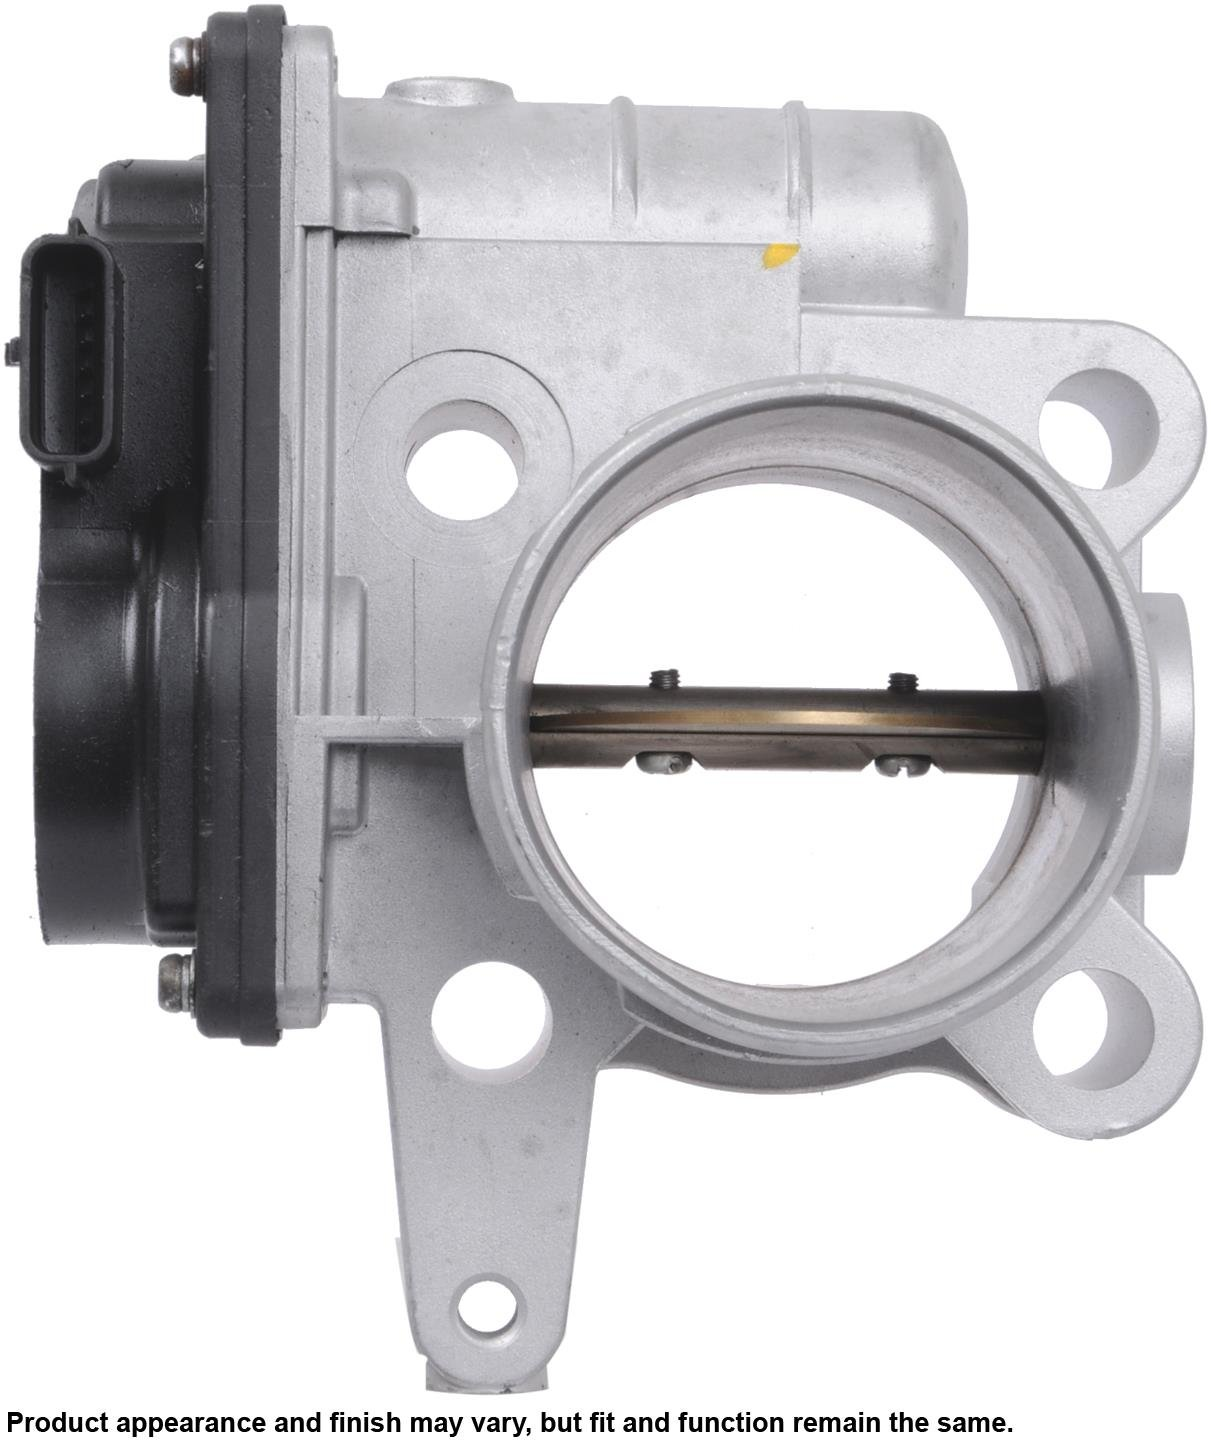 A1 Cardone 67-3032 Remanufactured Throttle Body, 1 Pack by A1 Cardone